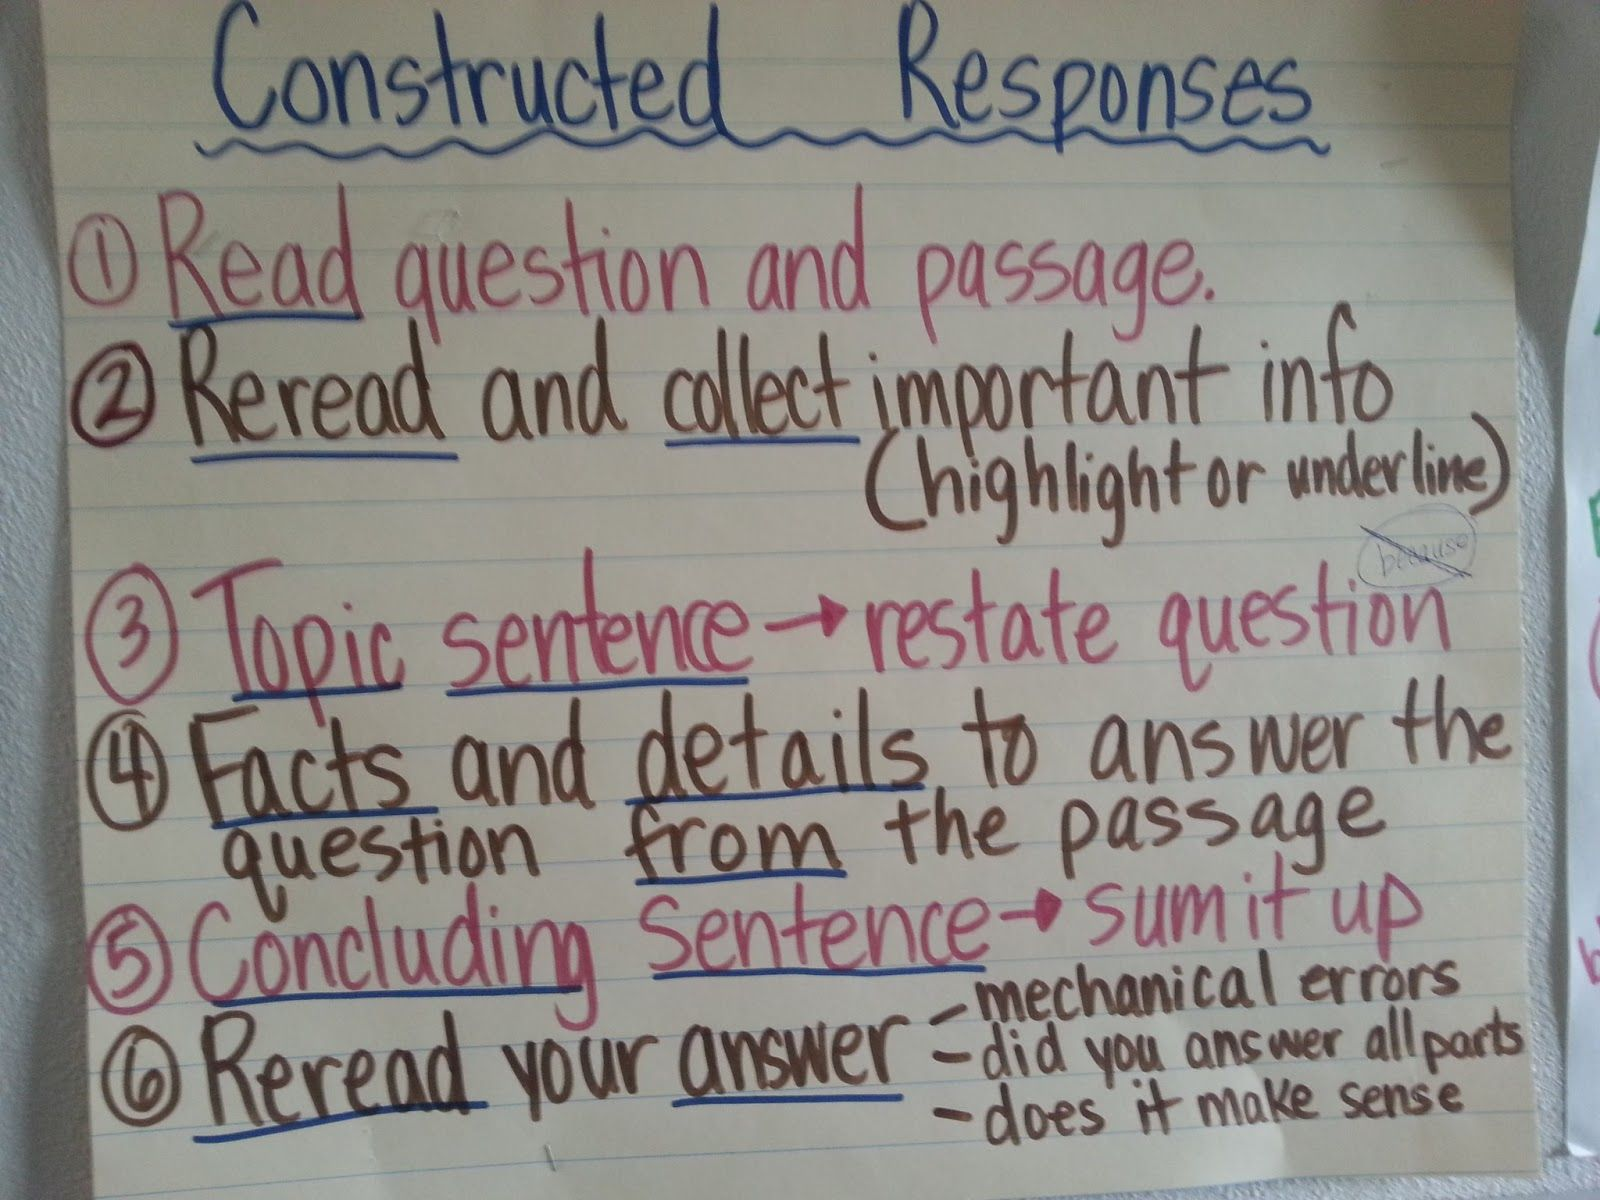 28 Constructed Response ideas  constructed response, math